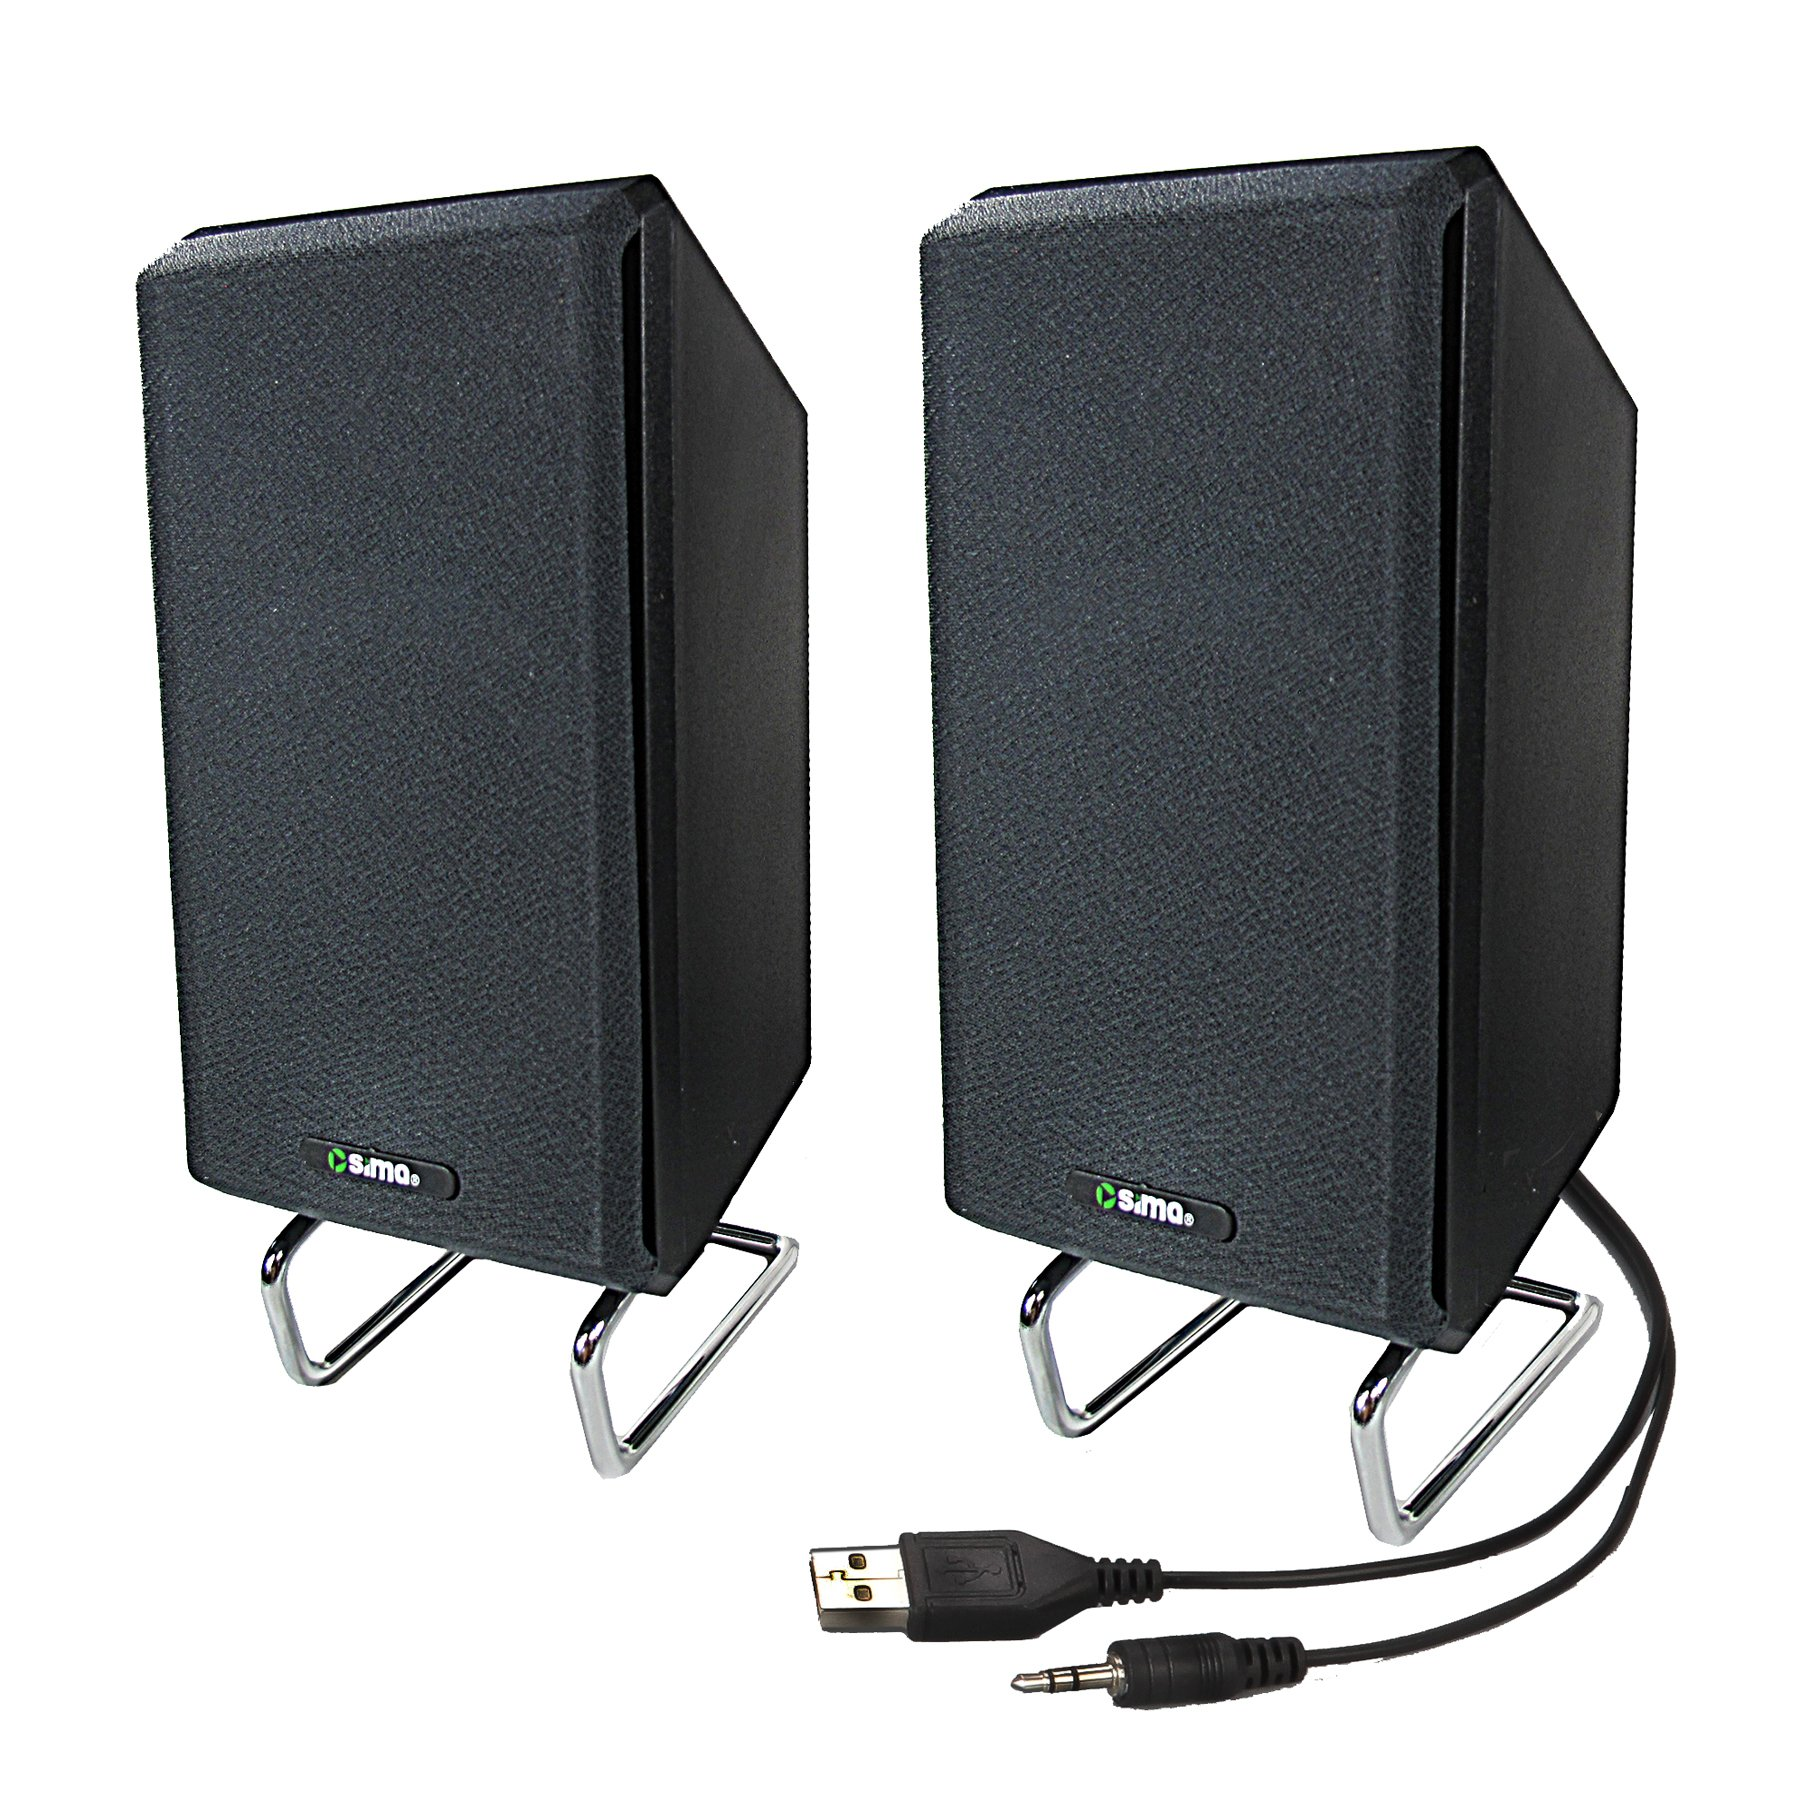 Sima XL-PRO-SPK 10 W Computer/Projector Speakers with Standard Headphone Plug, Black